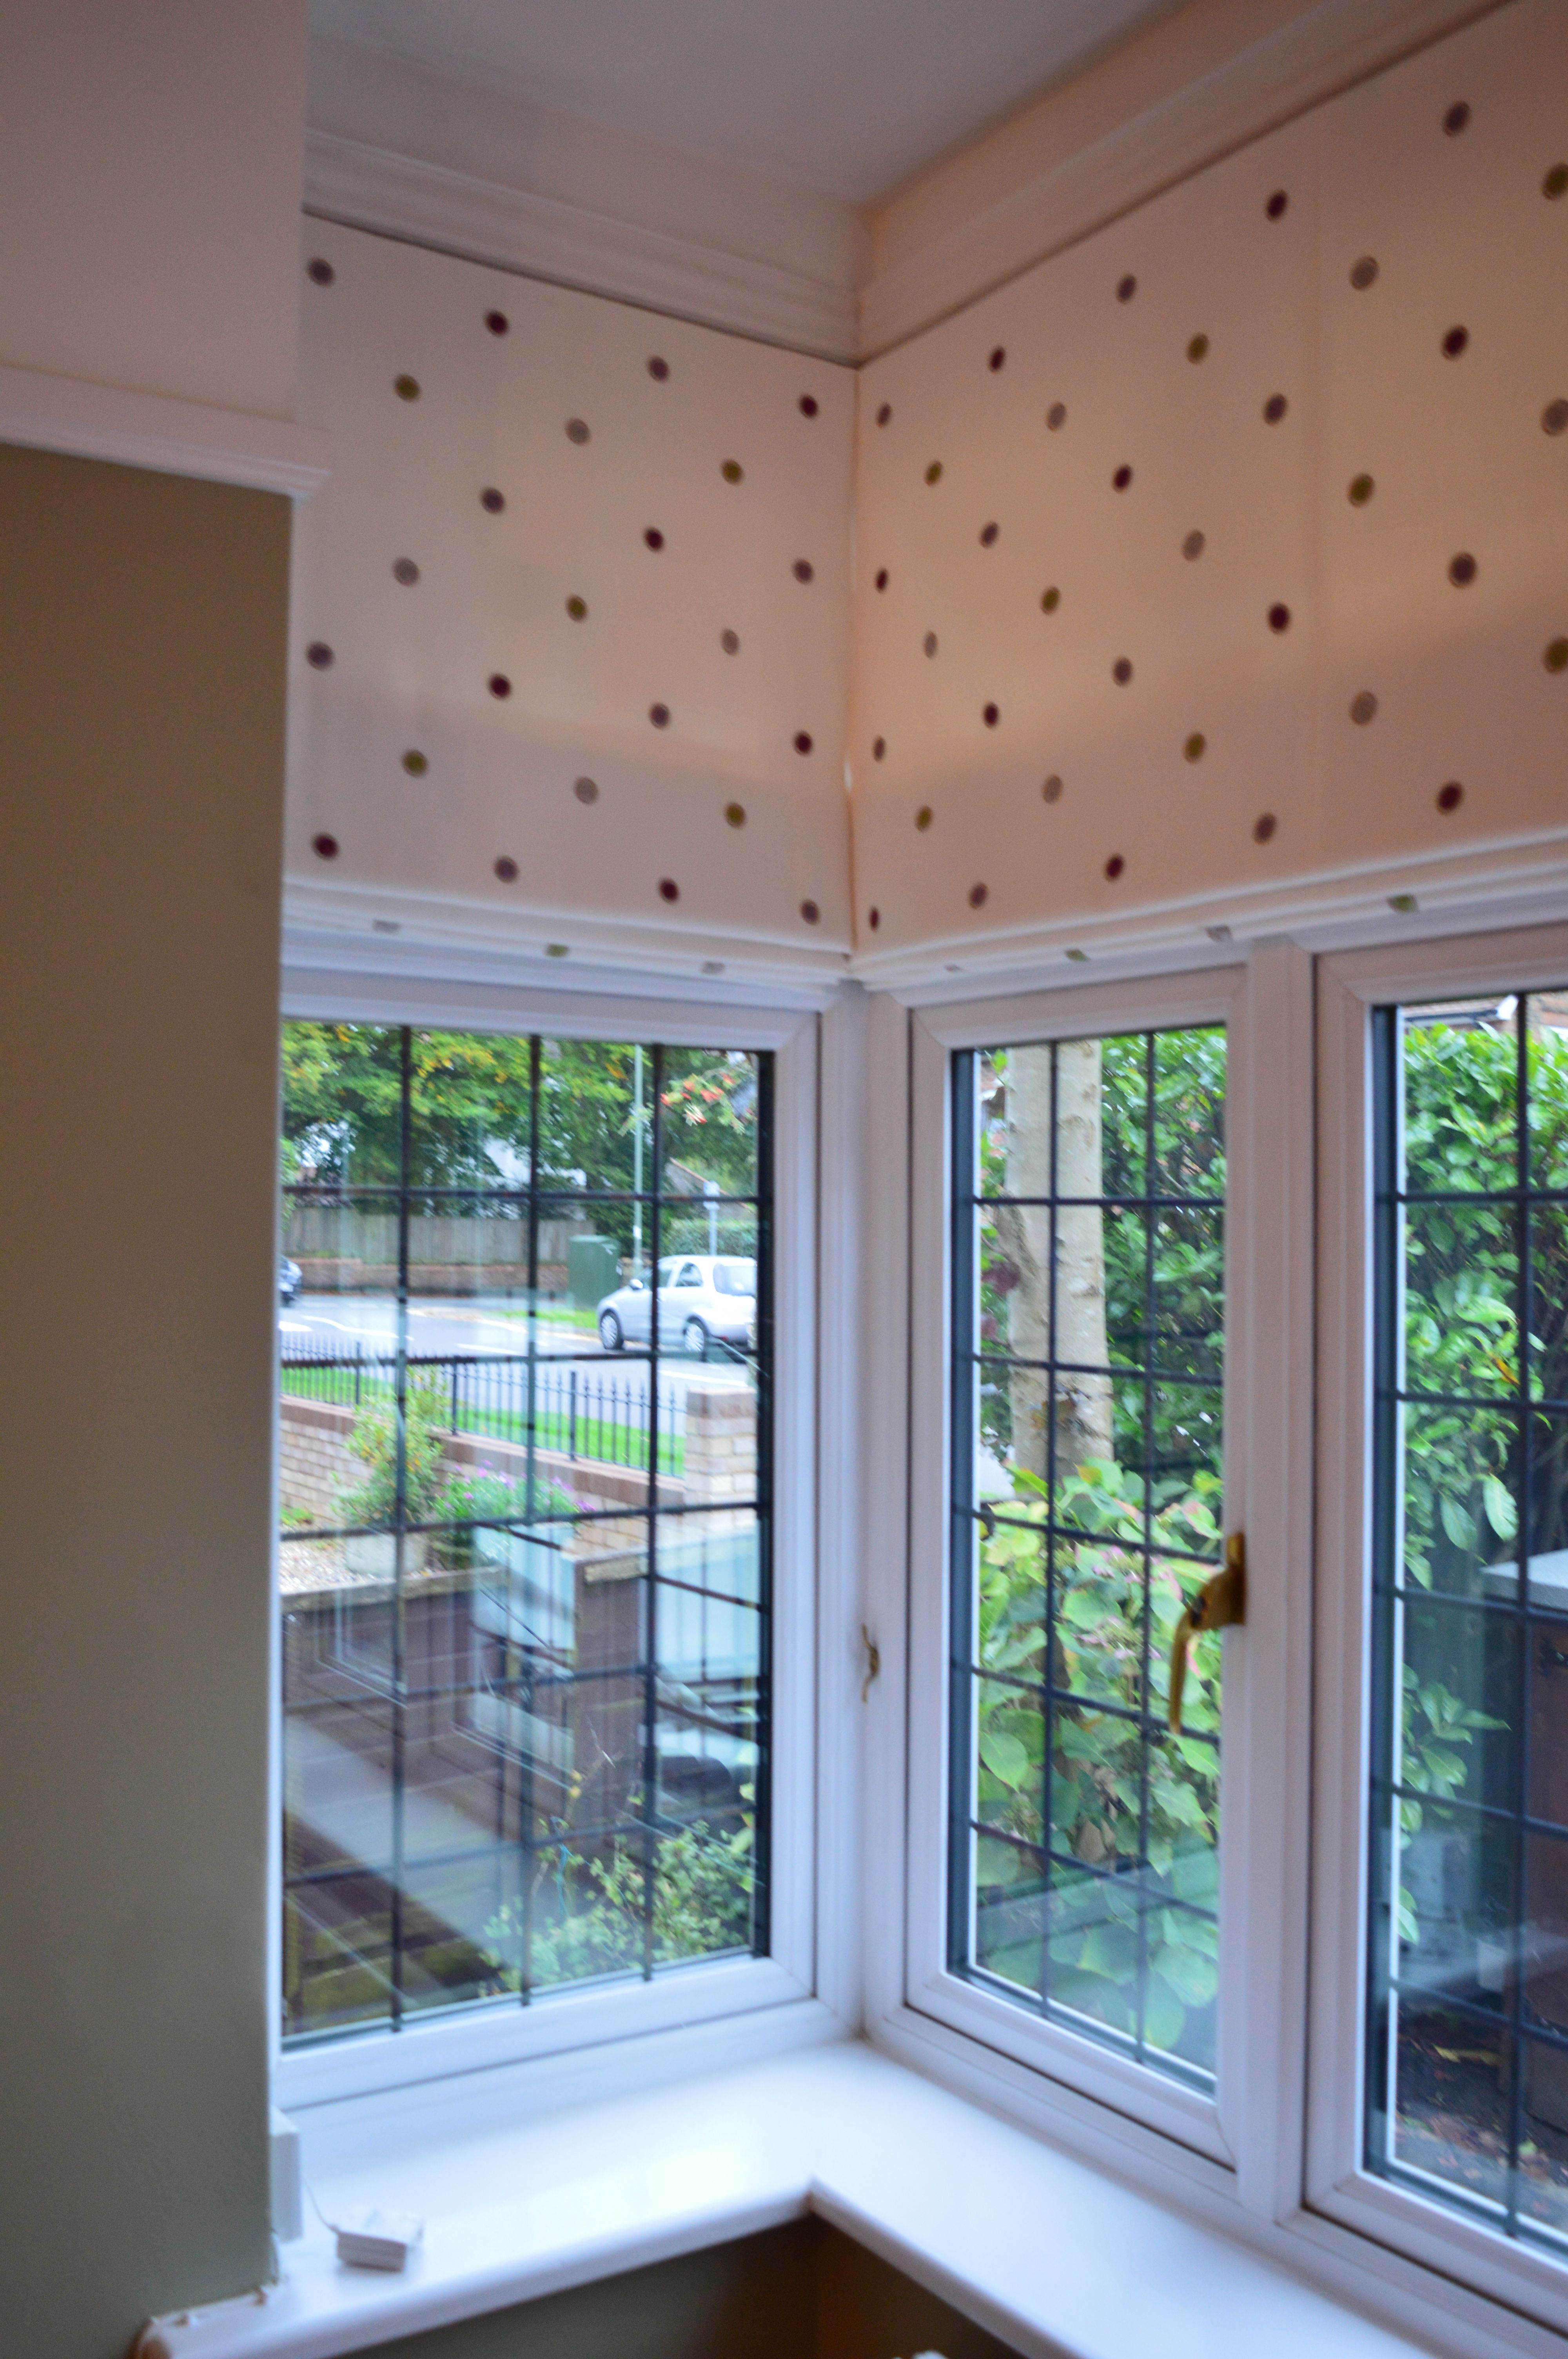 Bedroom Blinds Ideas Set Property clarke & clarke embroidered spot fabric on 3 roman blinds in a